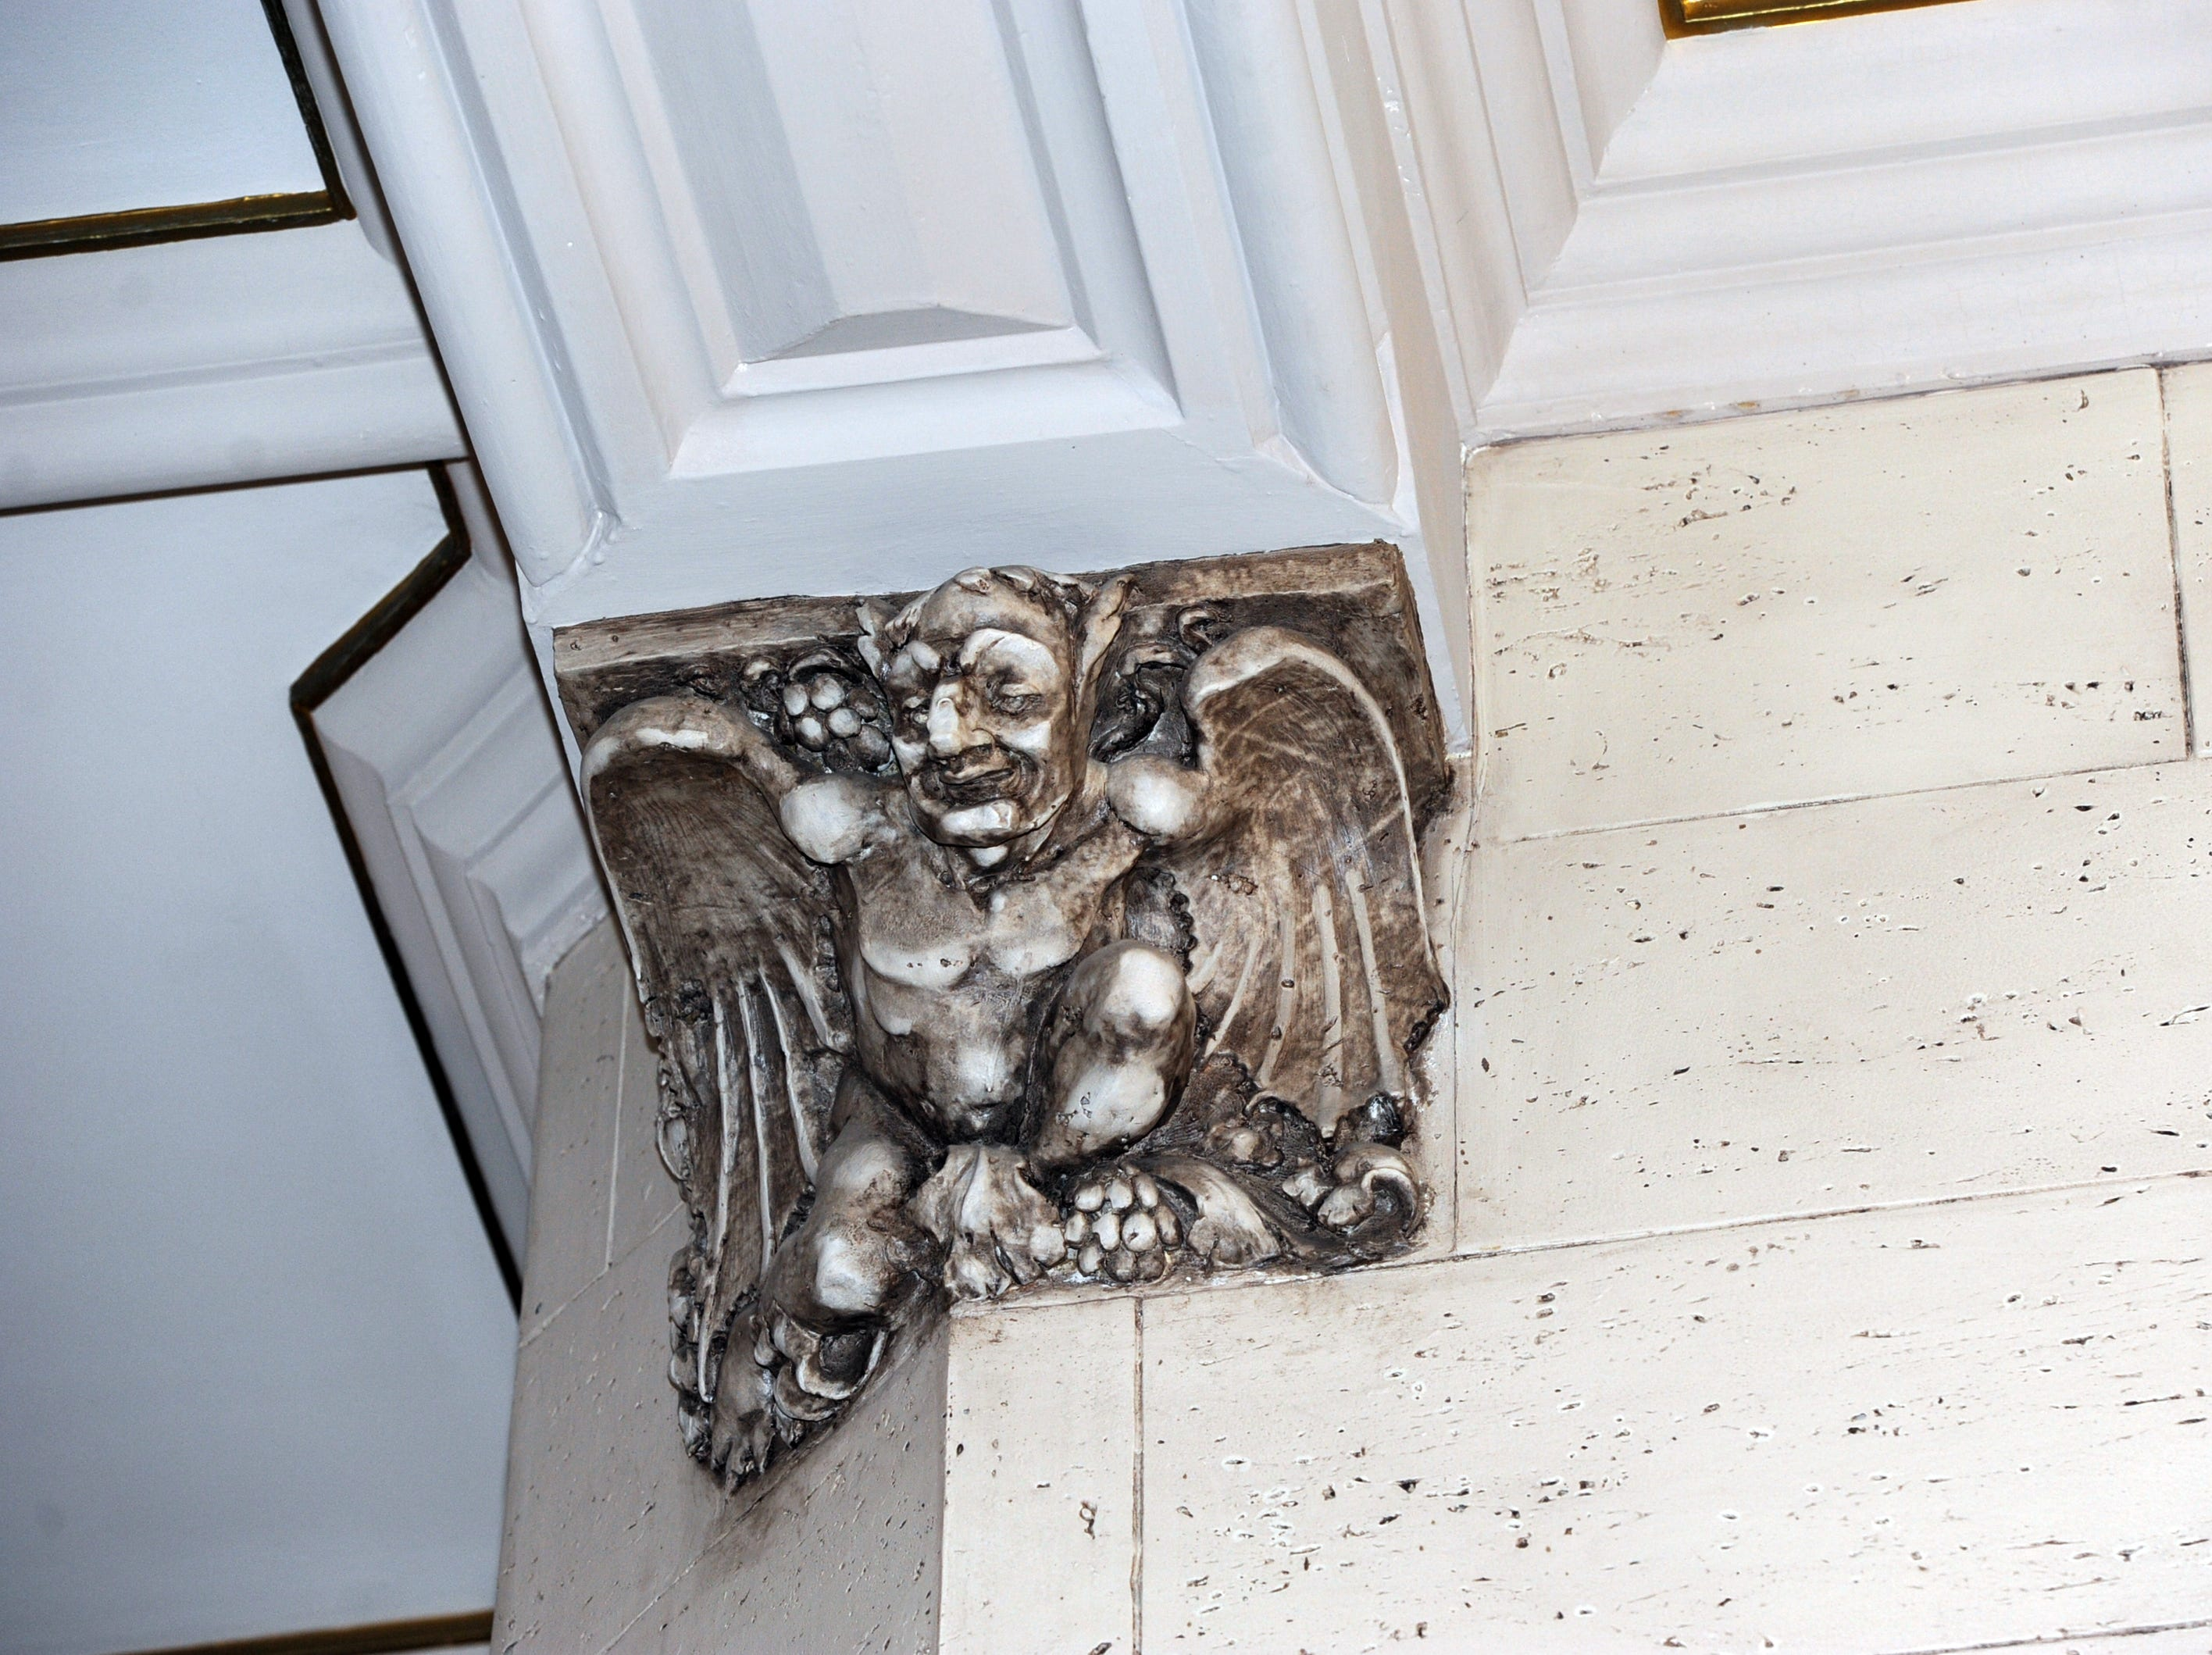 There are 88 gargoyle heads on the exterior of the building, according to its online history, and more similar decorative elements inside.